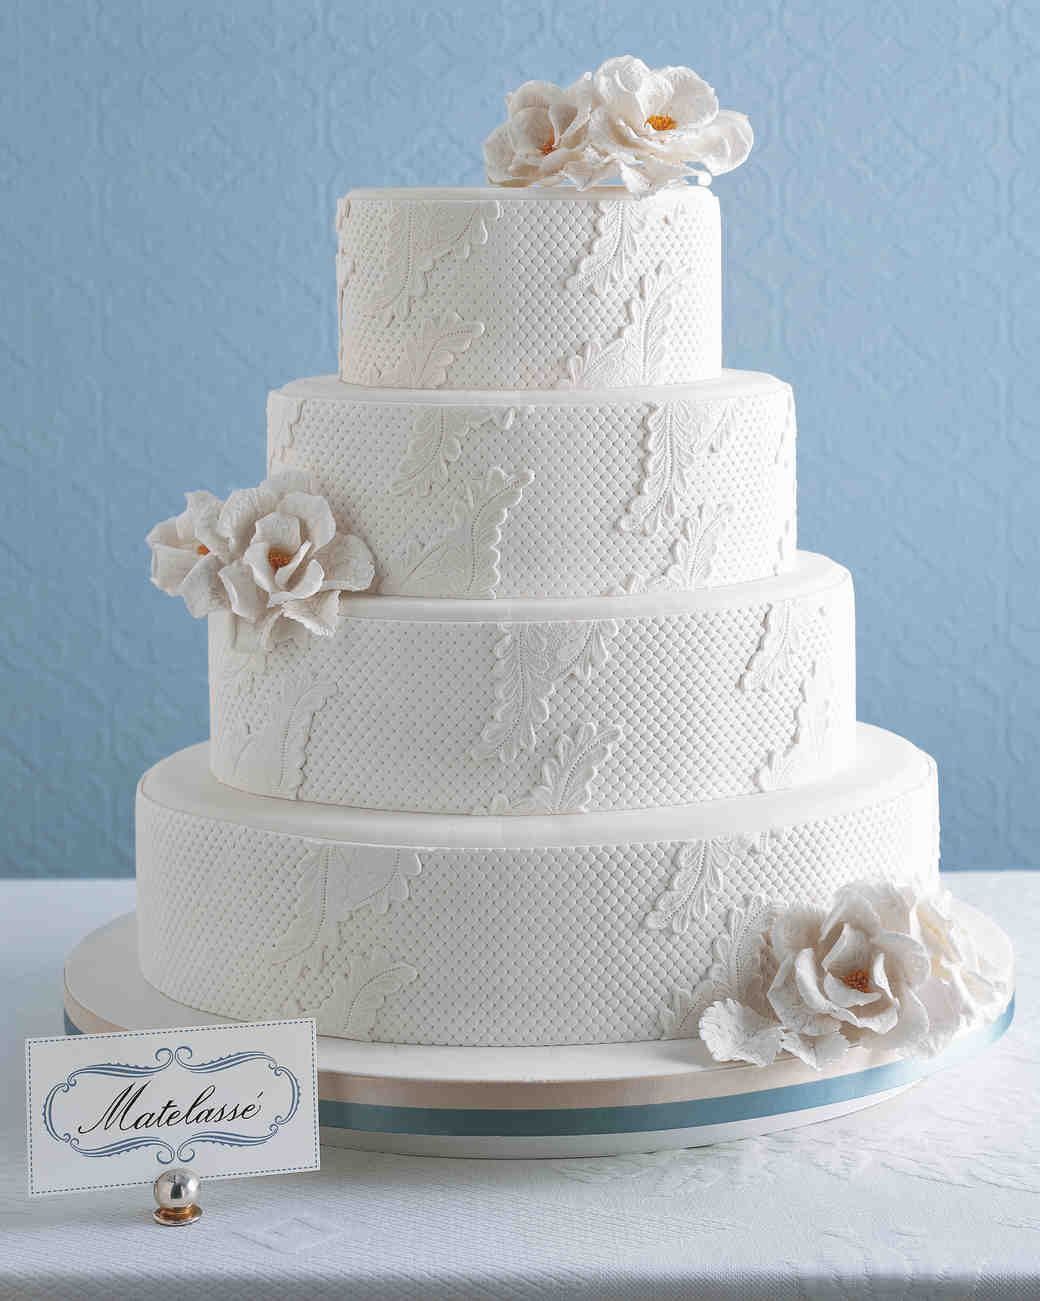 20 Years Of Gorgeous Wedding Cakes By Pastry Chef Ron BenIsrael - Ben Israel Wedding Cakes